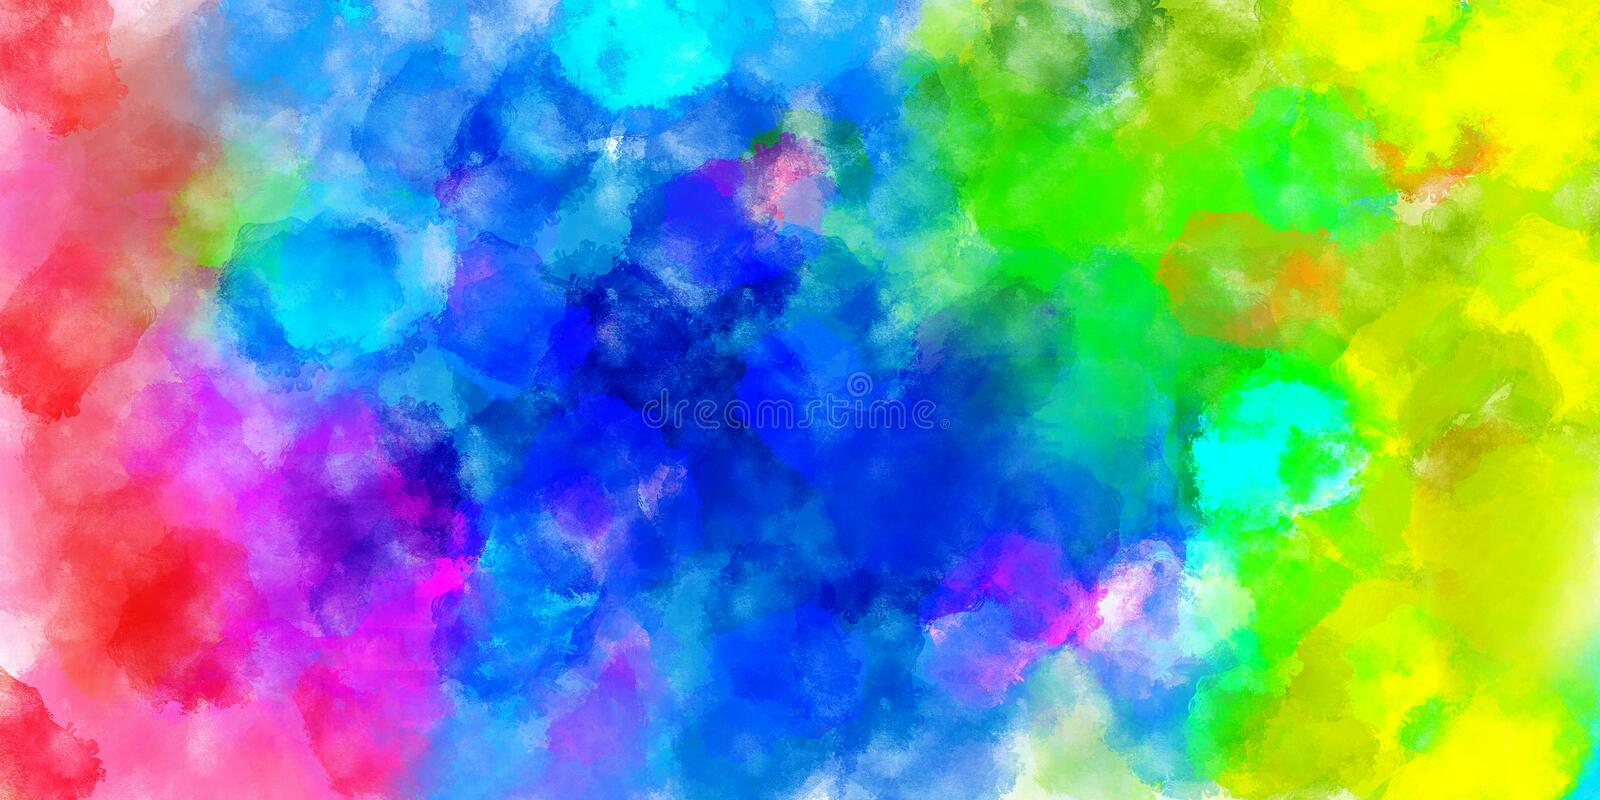 The Colorful watercolor abstract pattern background. Illustration royalty free illustration